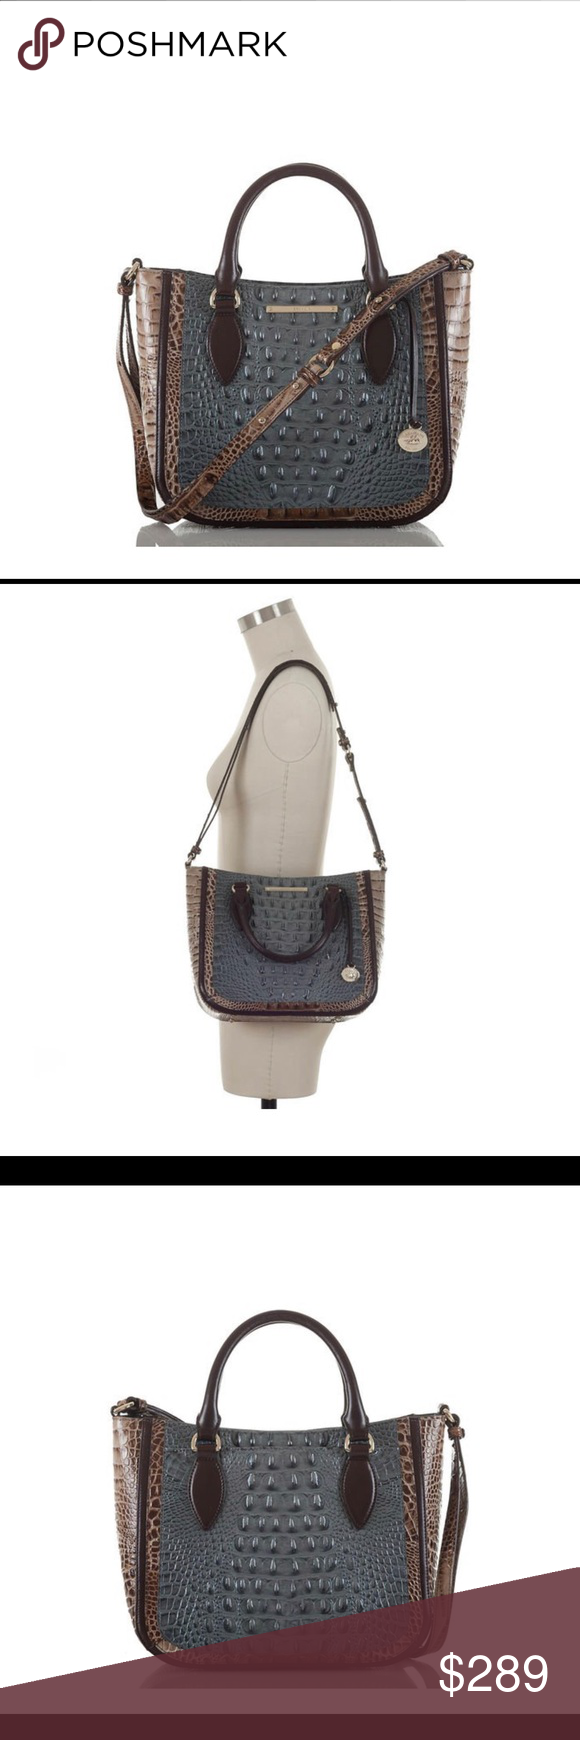 7906341d20 Brahmin Small Lena Satchel Mallard Davos The Small Lena Satchel is a great  style for everyday